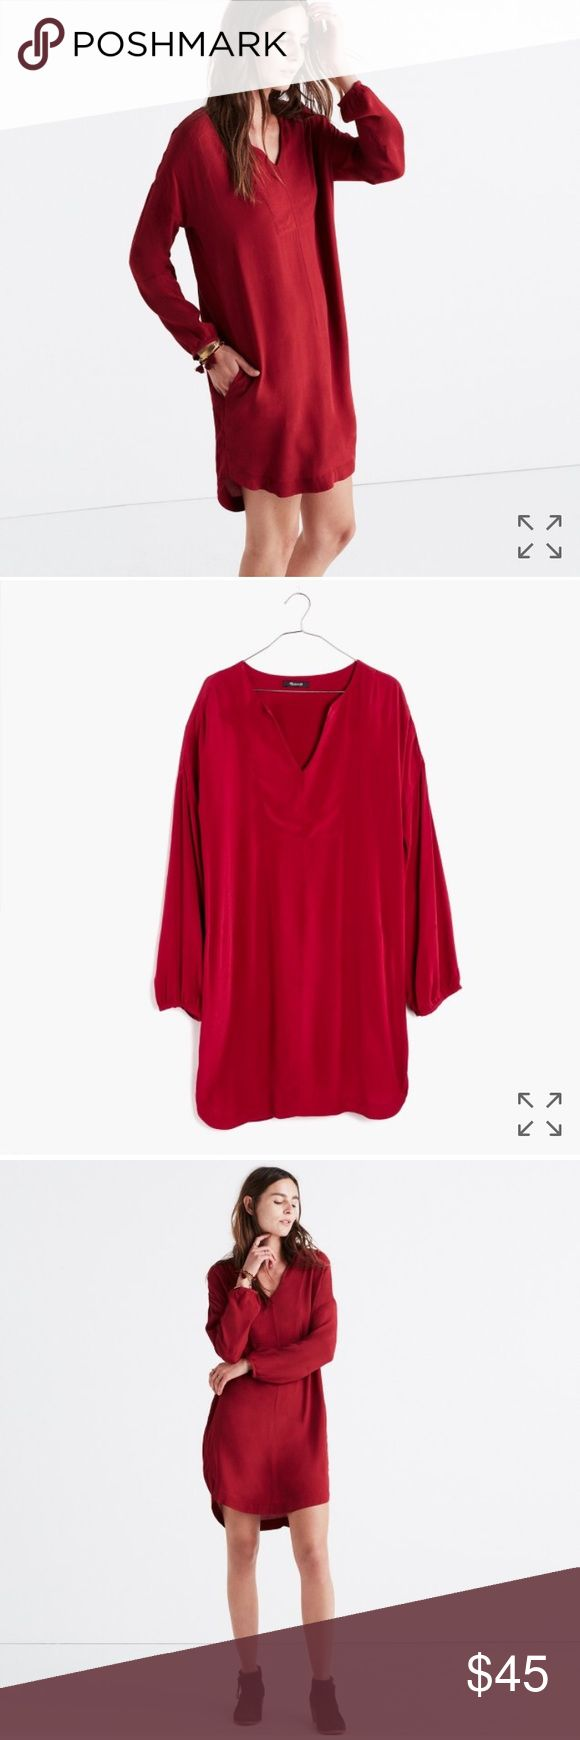 Madewell Red Tunic Dress BNWT Red Madewell Du-Jour Three Quarter sleeve dress. Brand new with tags! Madewell Dresses